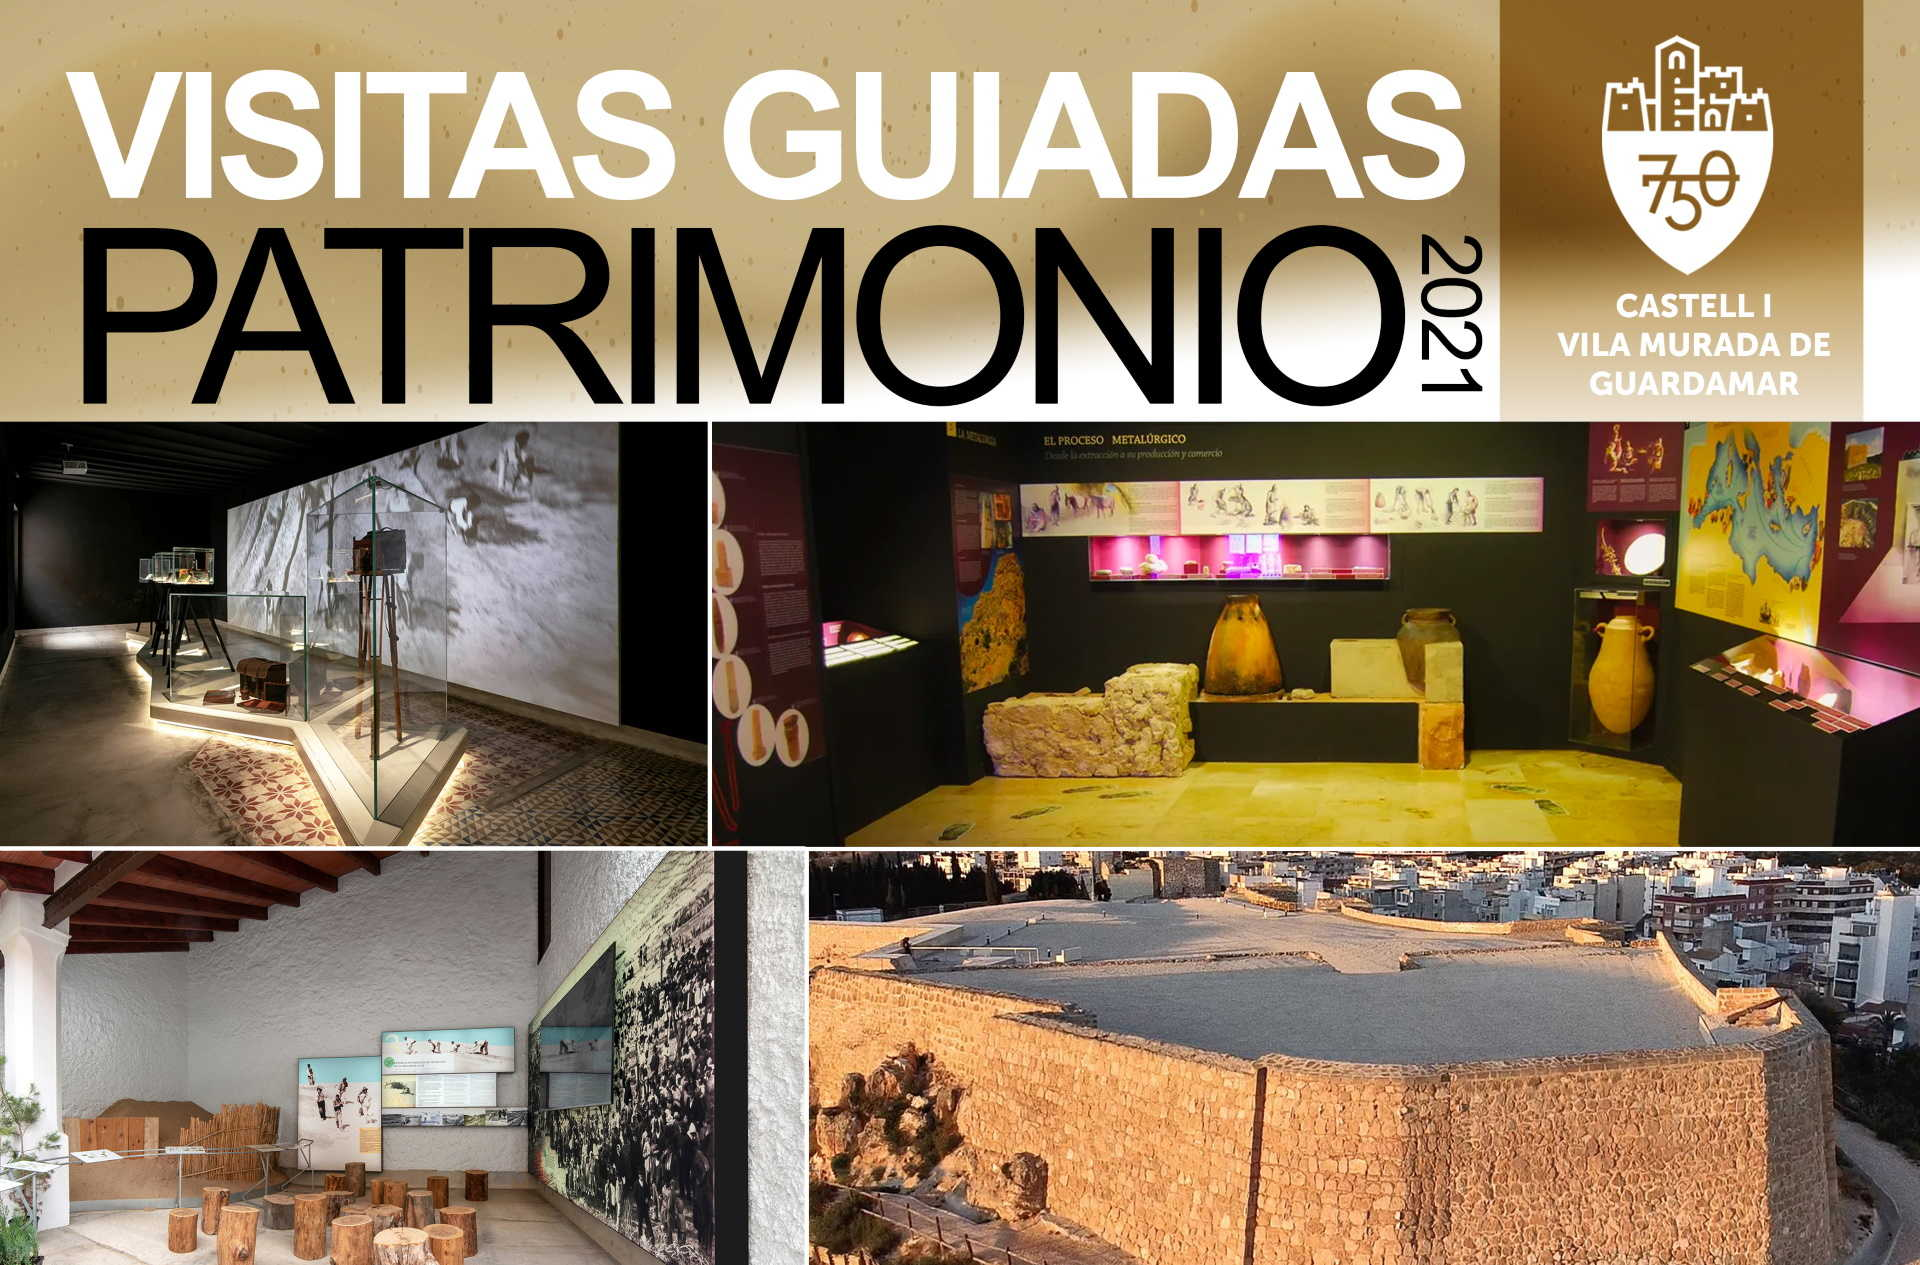 Guardamar heritage guided tours 2021